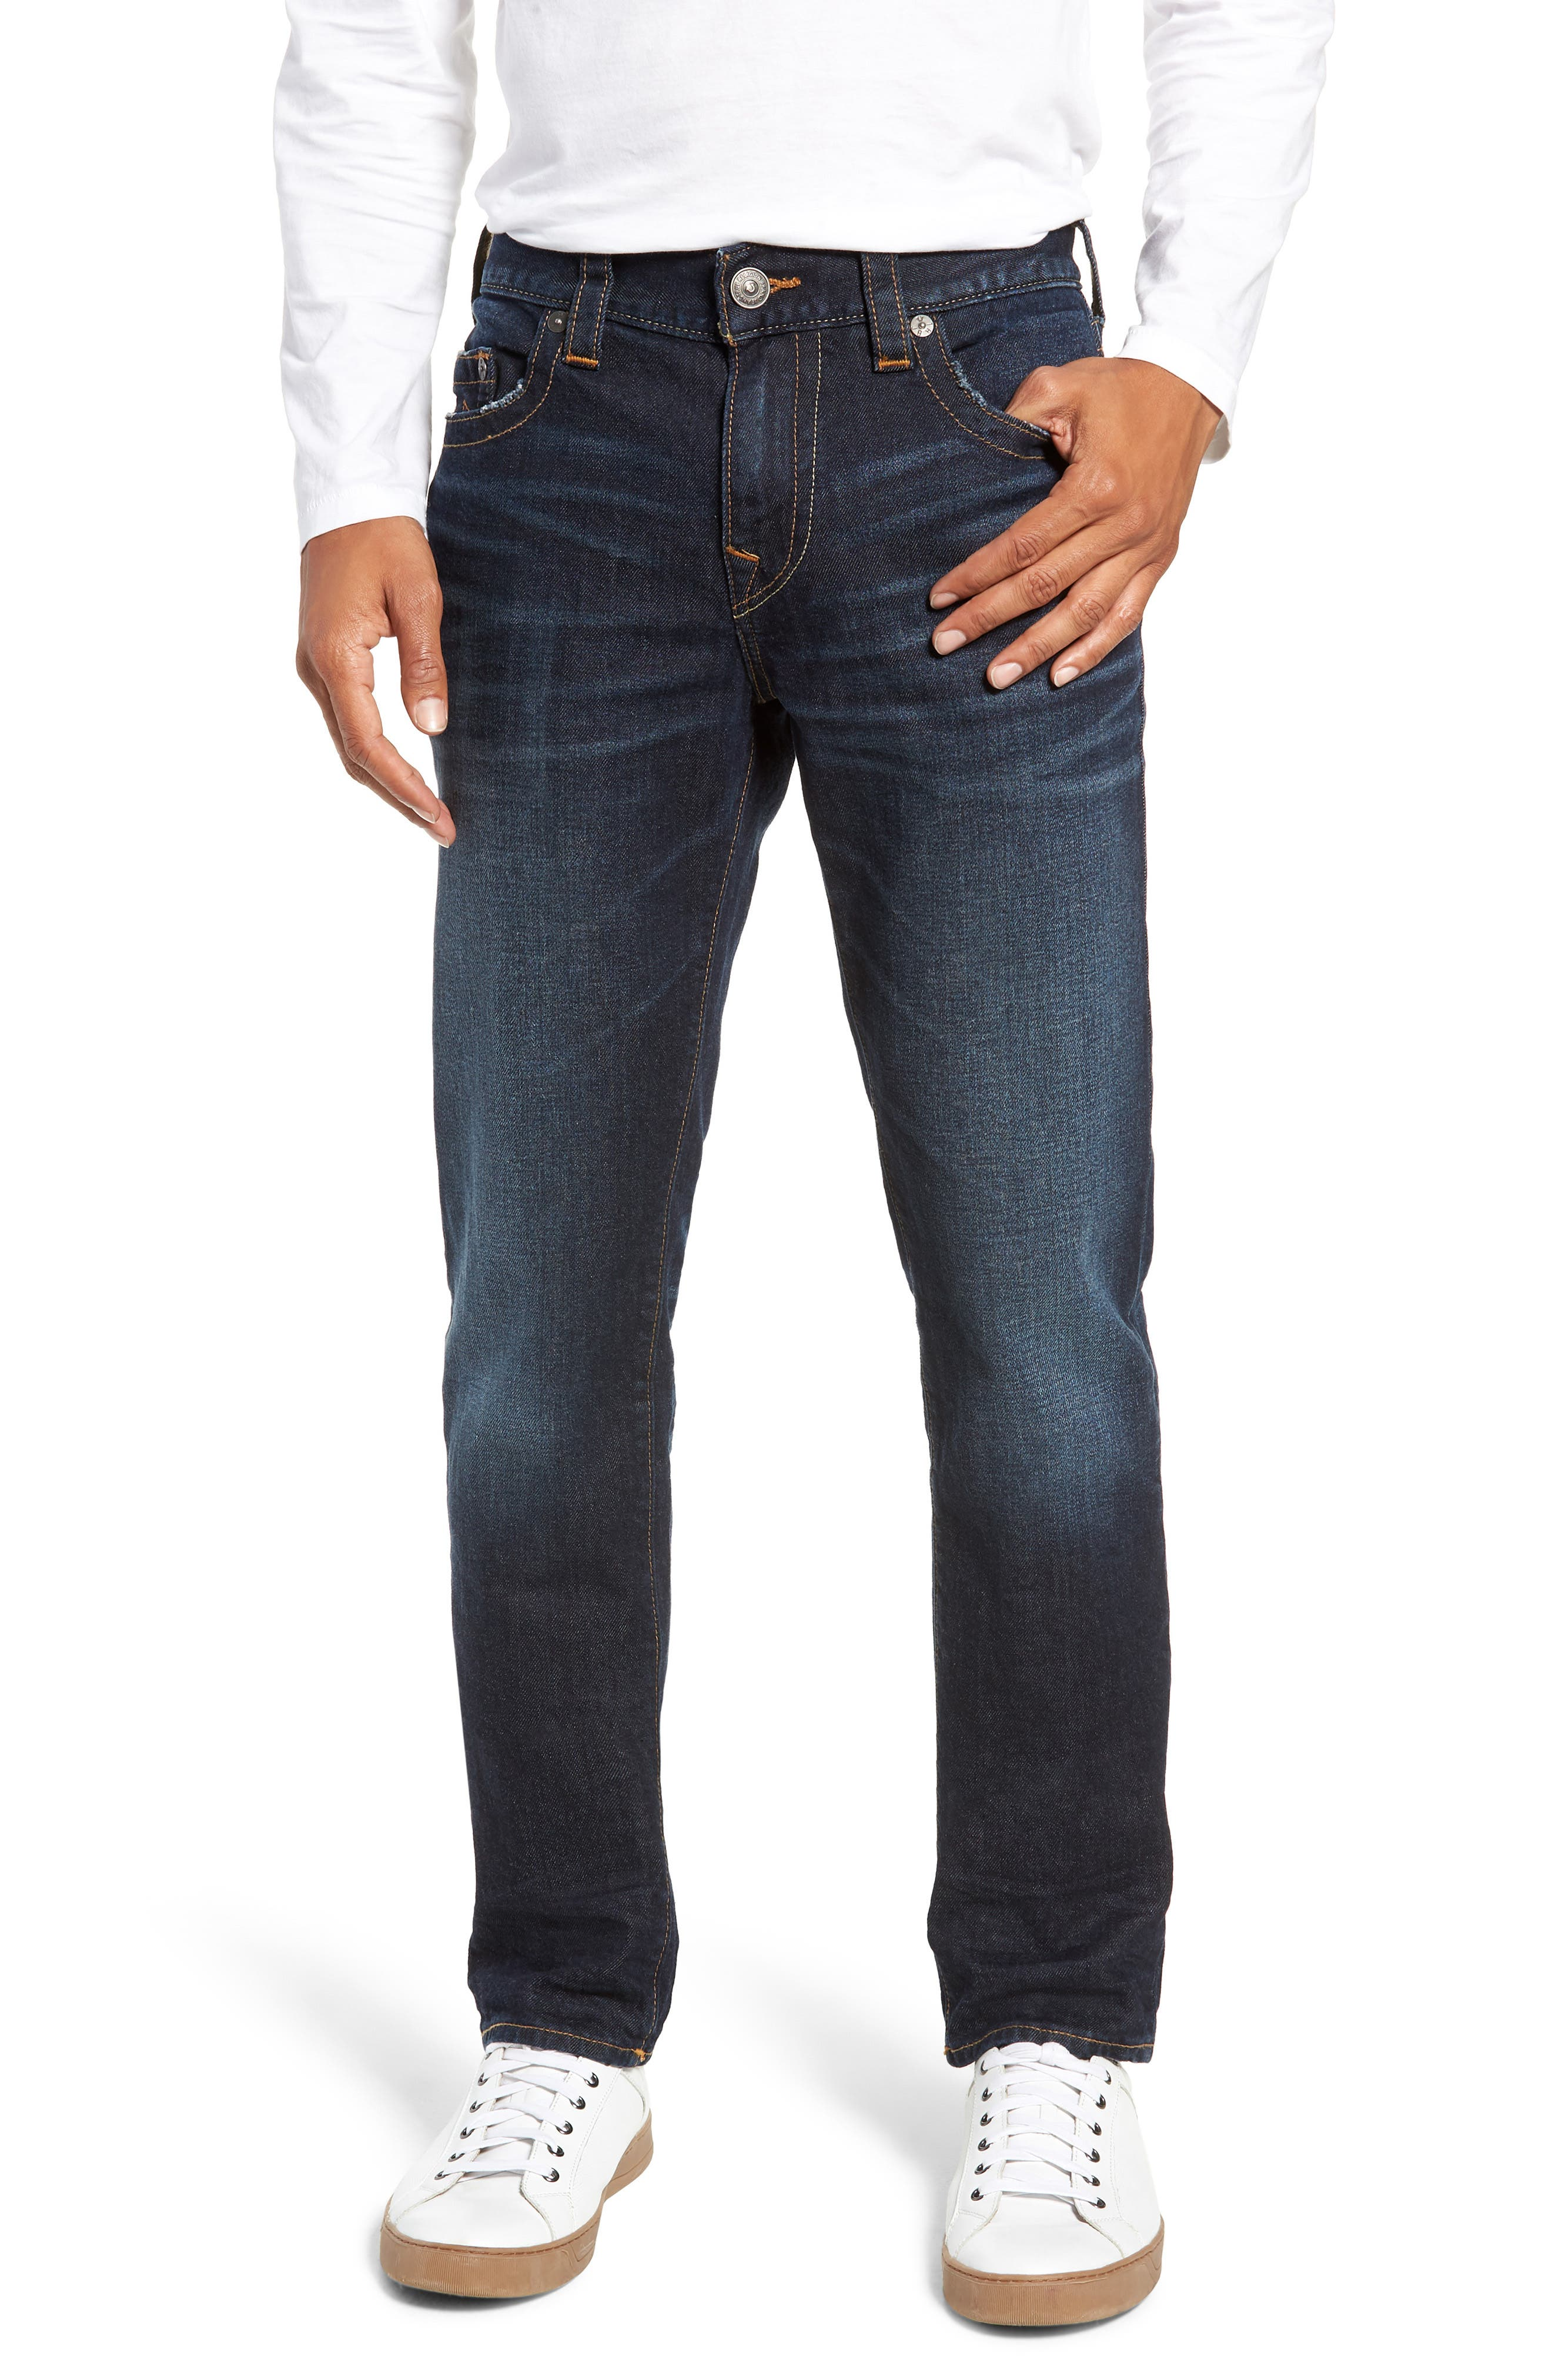 Rocco Skinny Fit Jeans,                             Main thumbnail 1, color,                             DARK TUNNEL